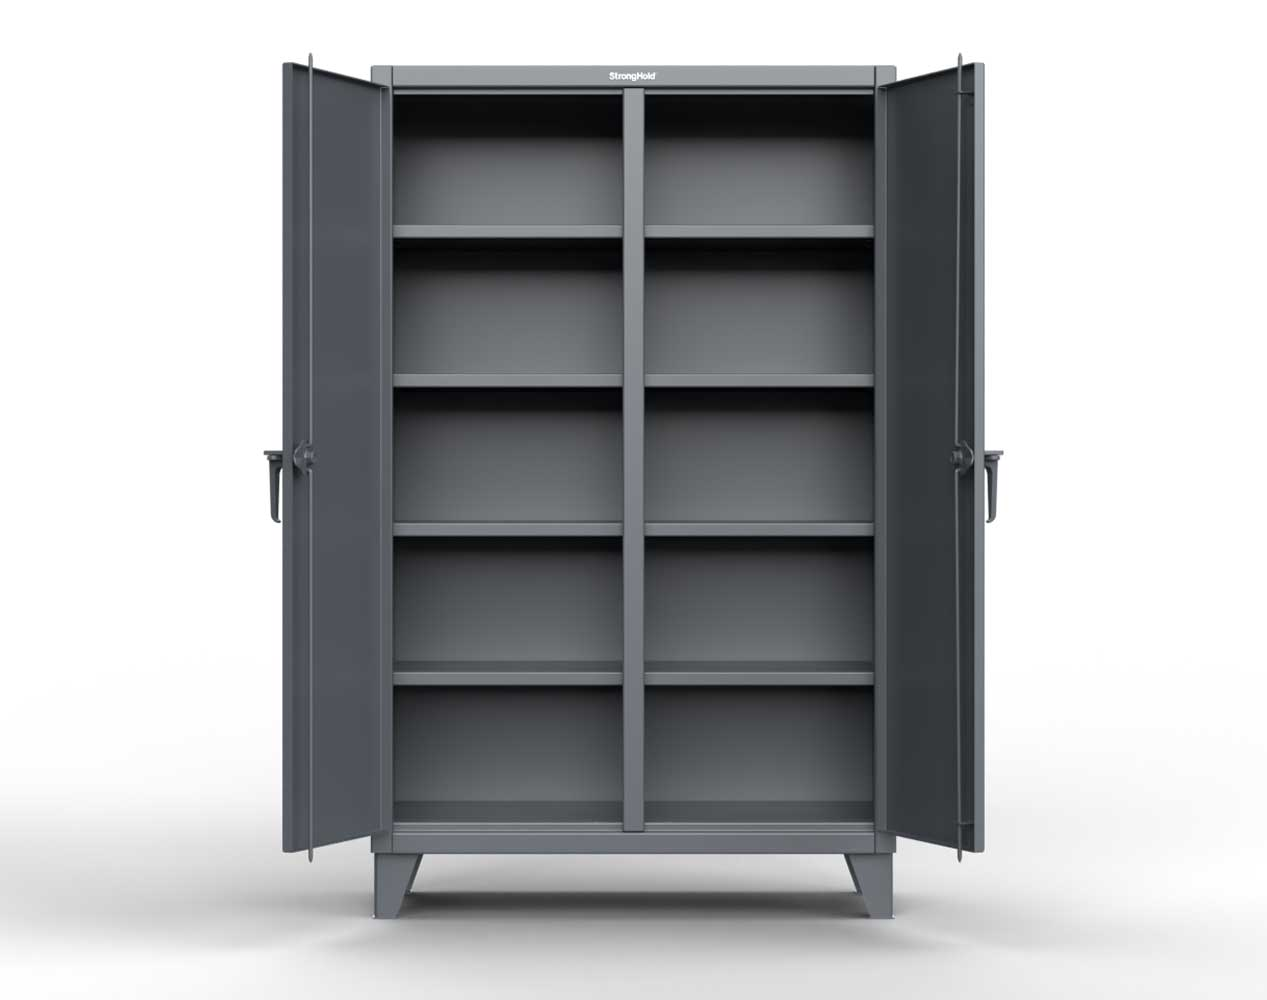 Extra Heavy Duty 12 GA Double Shift Cabinet with 8 Shelves – 60 In. W x 24 In. D x 78 In. H